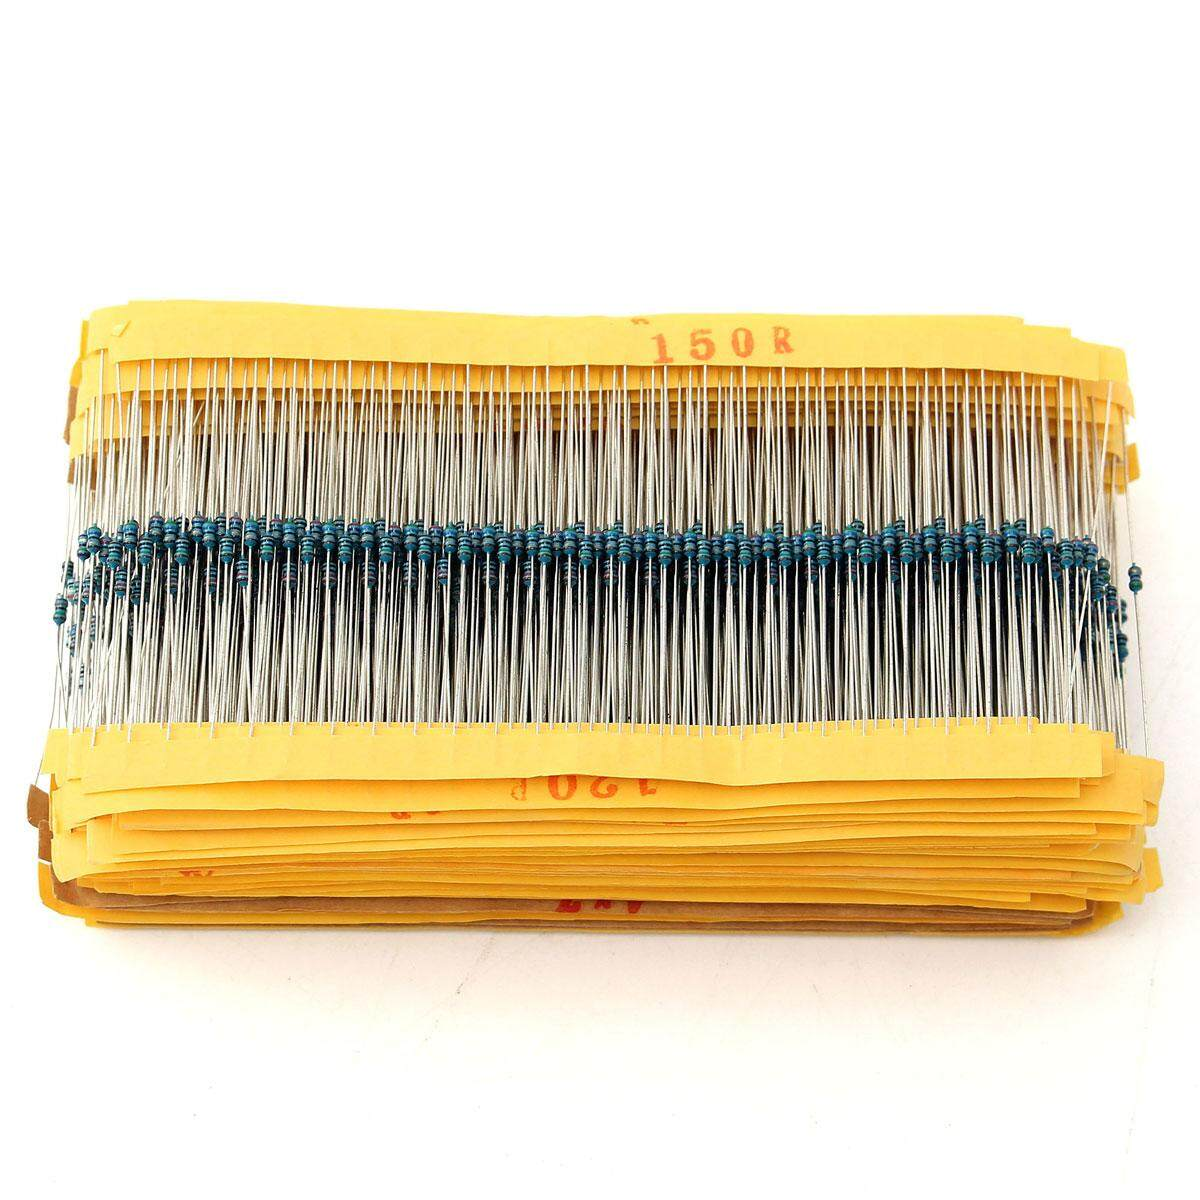 300PCS 1//8W 0.125W 1/% Metal Film Resistor 33K ohm